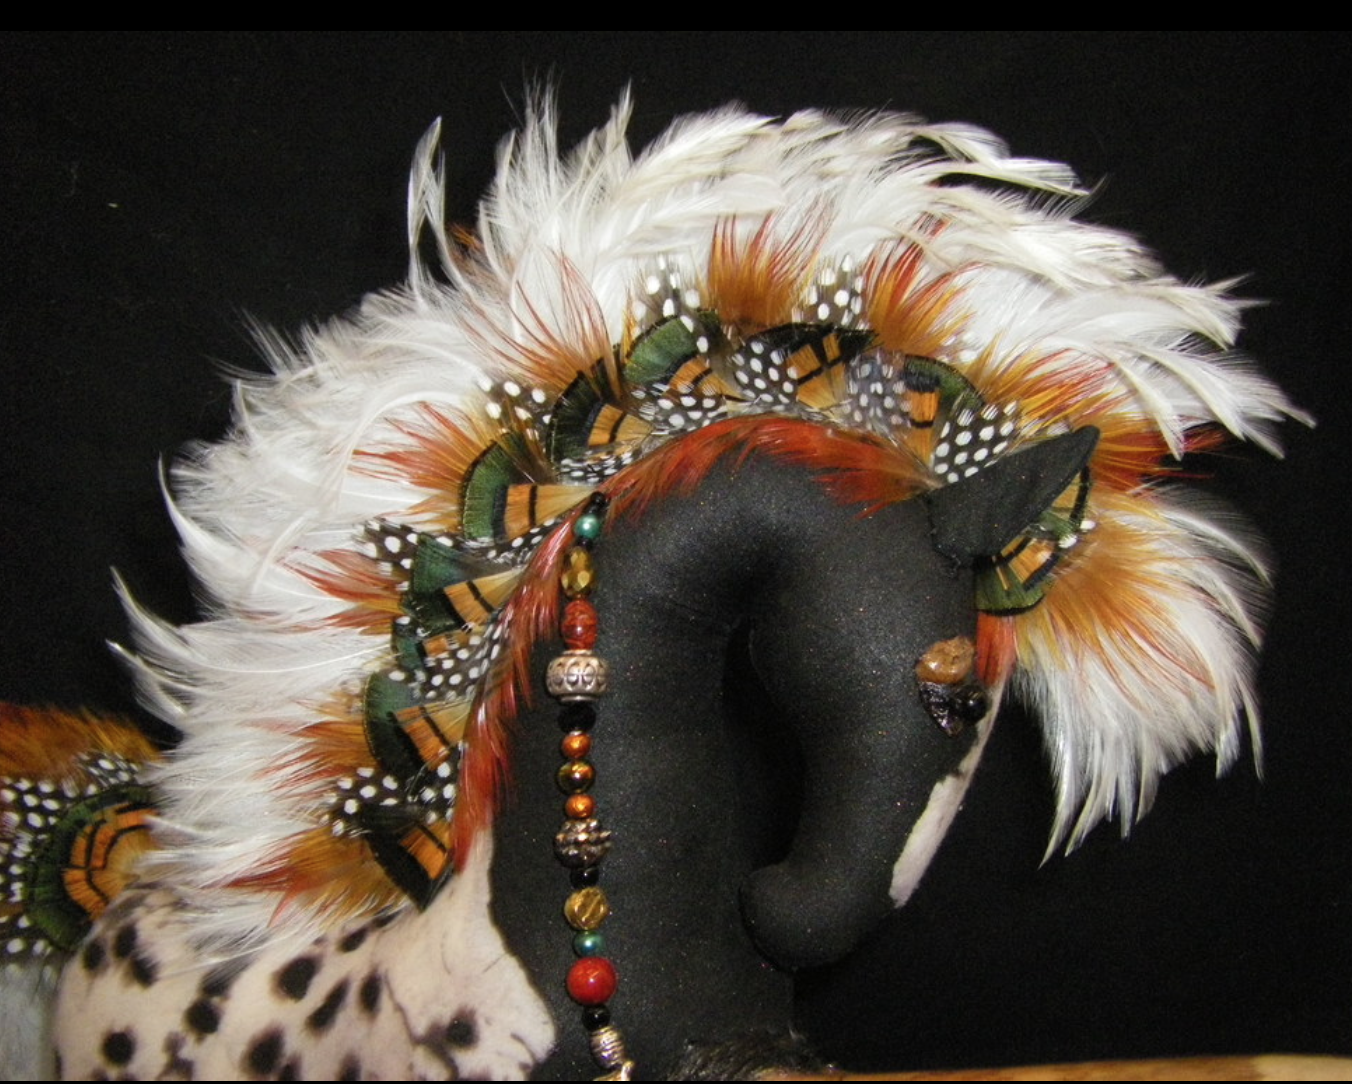 Robyn Hanna - Hand-dyed fabric body.Smooth pine branches as legs.Feathers as manes tails and embellishment.Pine cone petals as hooves,eyes,noses.Adorned with beads,Creating Horses,Moose,Elk,Buffalo,Bighorn,and more